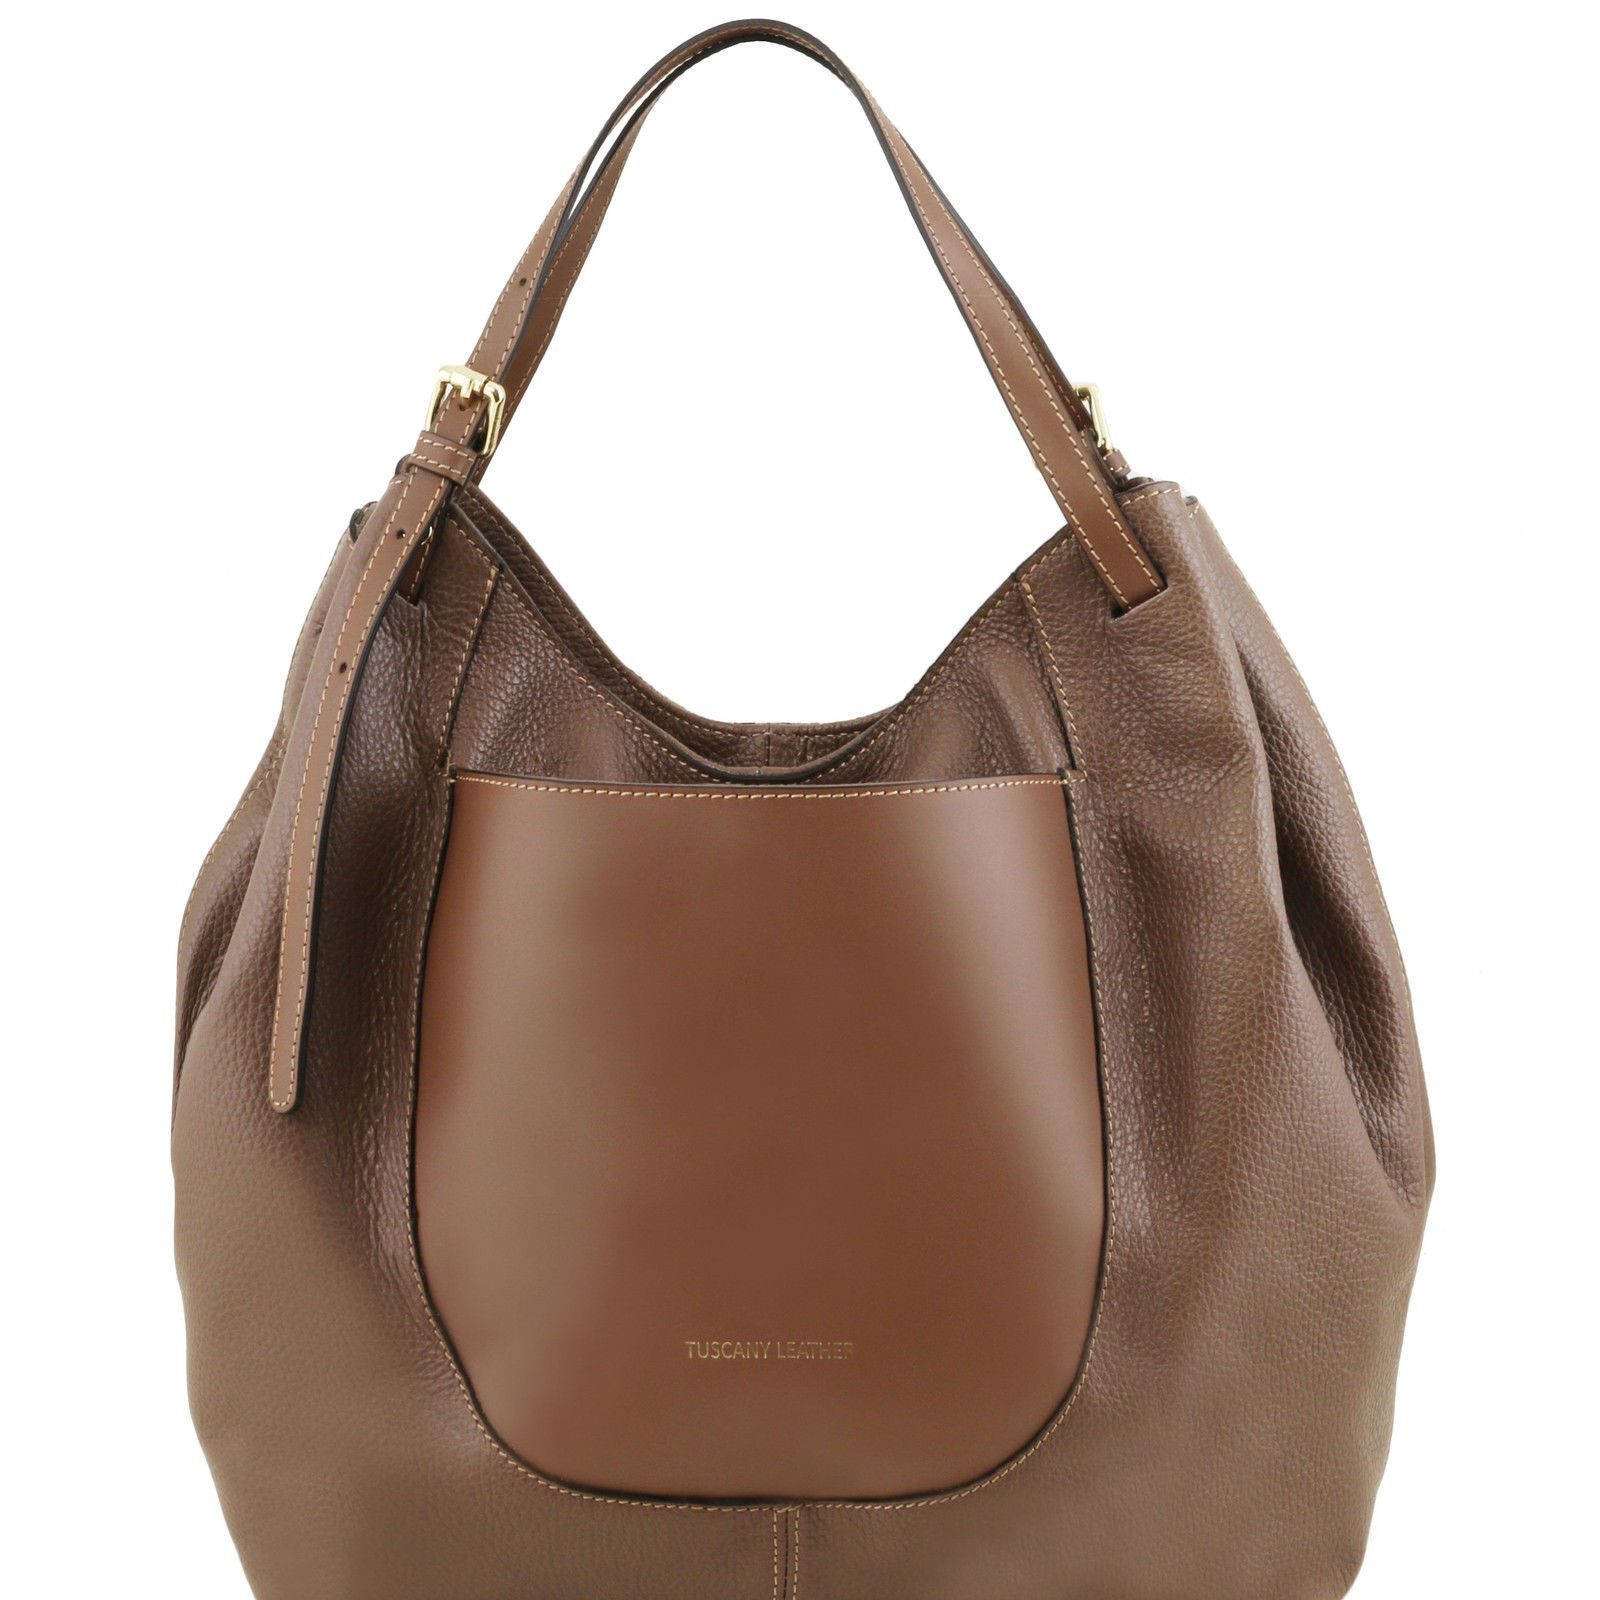 0799330732bf Tuscany Leather Soft Shopping Shoulder Bag With Adjustable Handle Made In  Italy